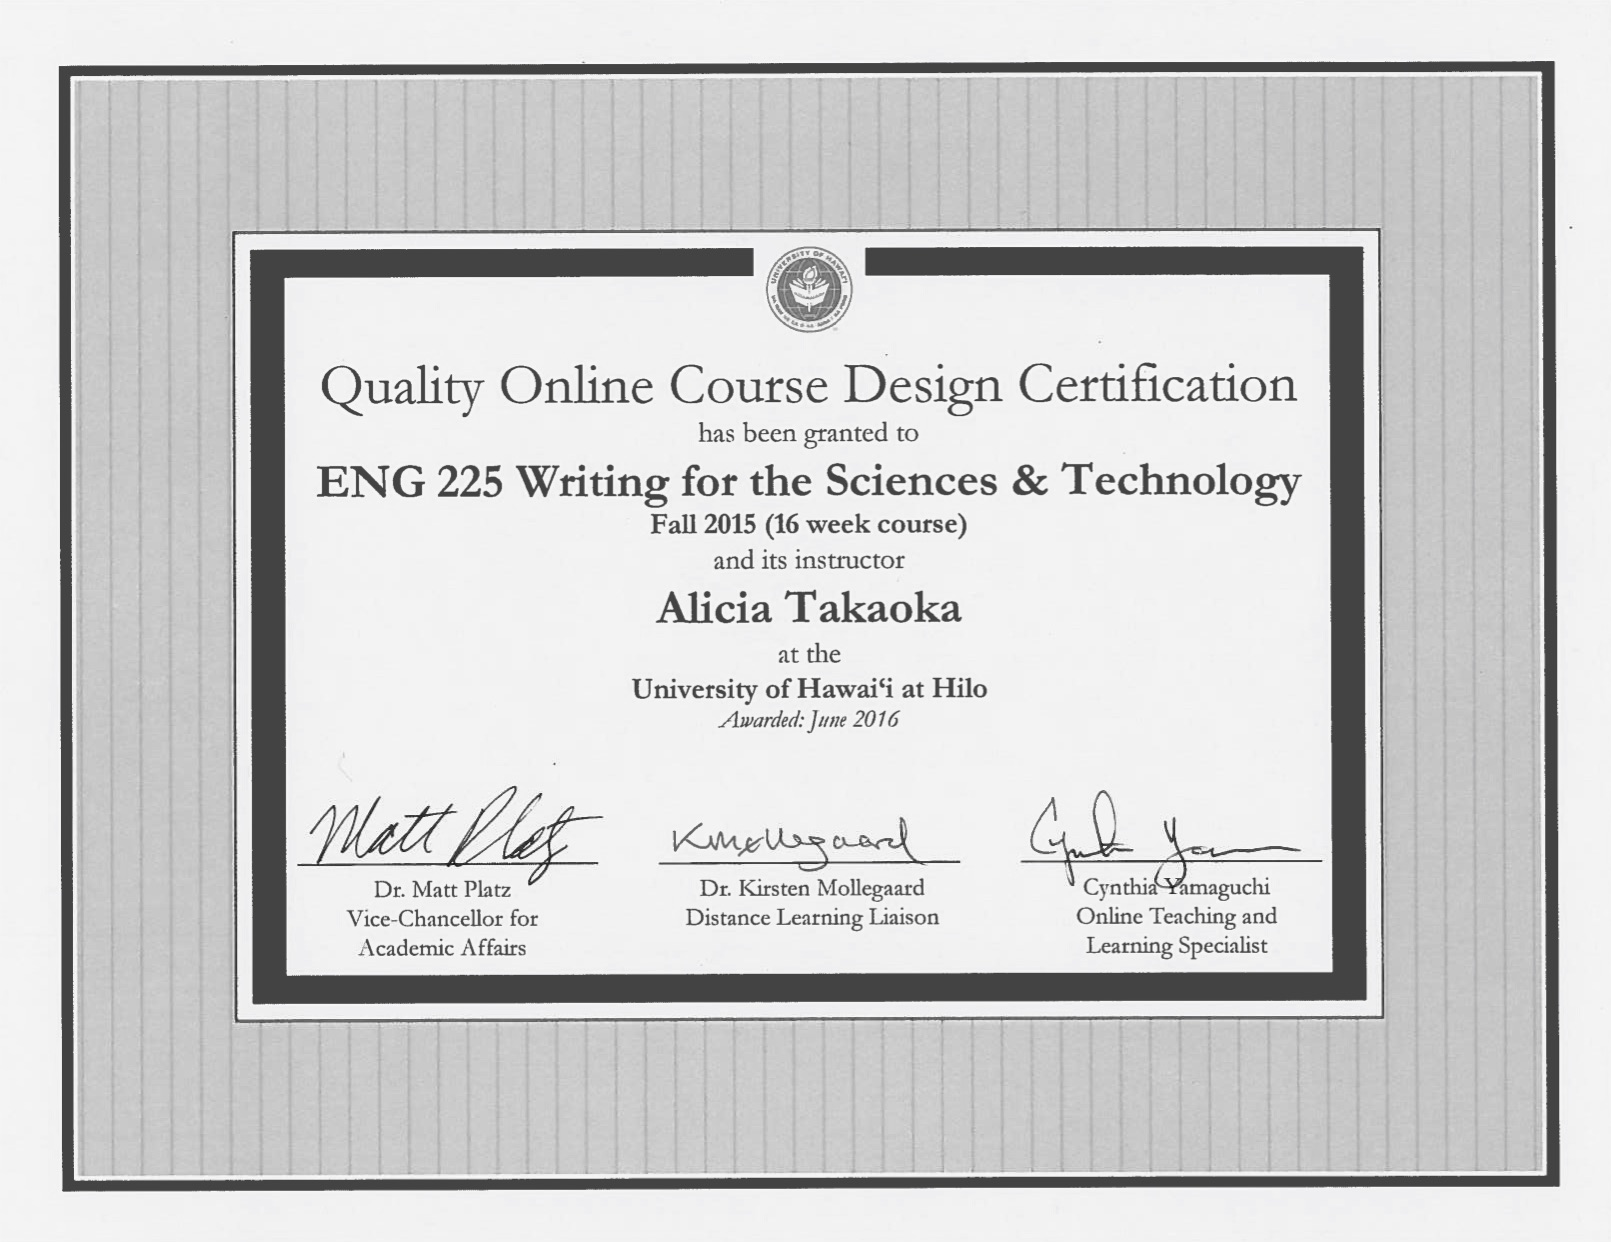 Quality Online Course Design Certificate, awarded to Alicia Takaoka